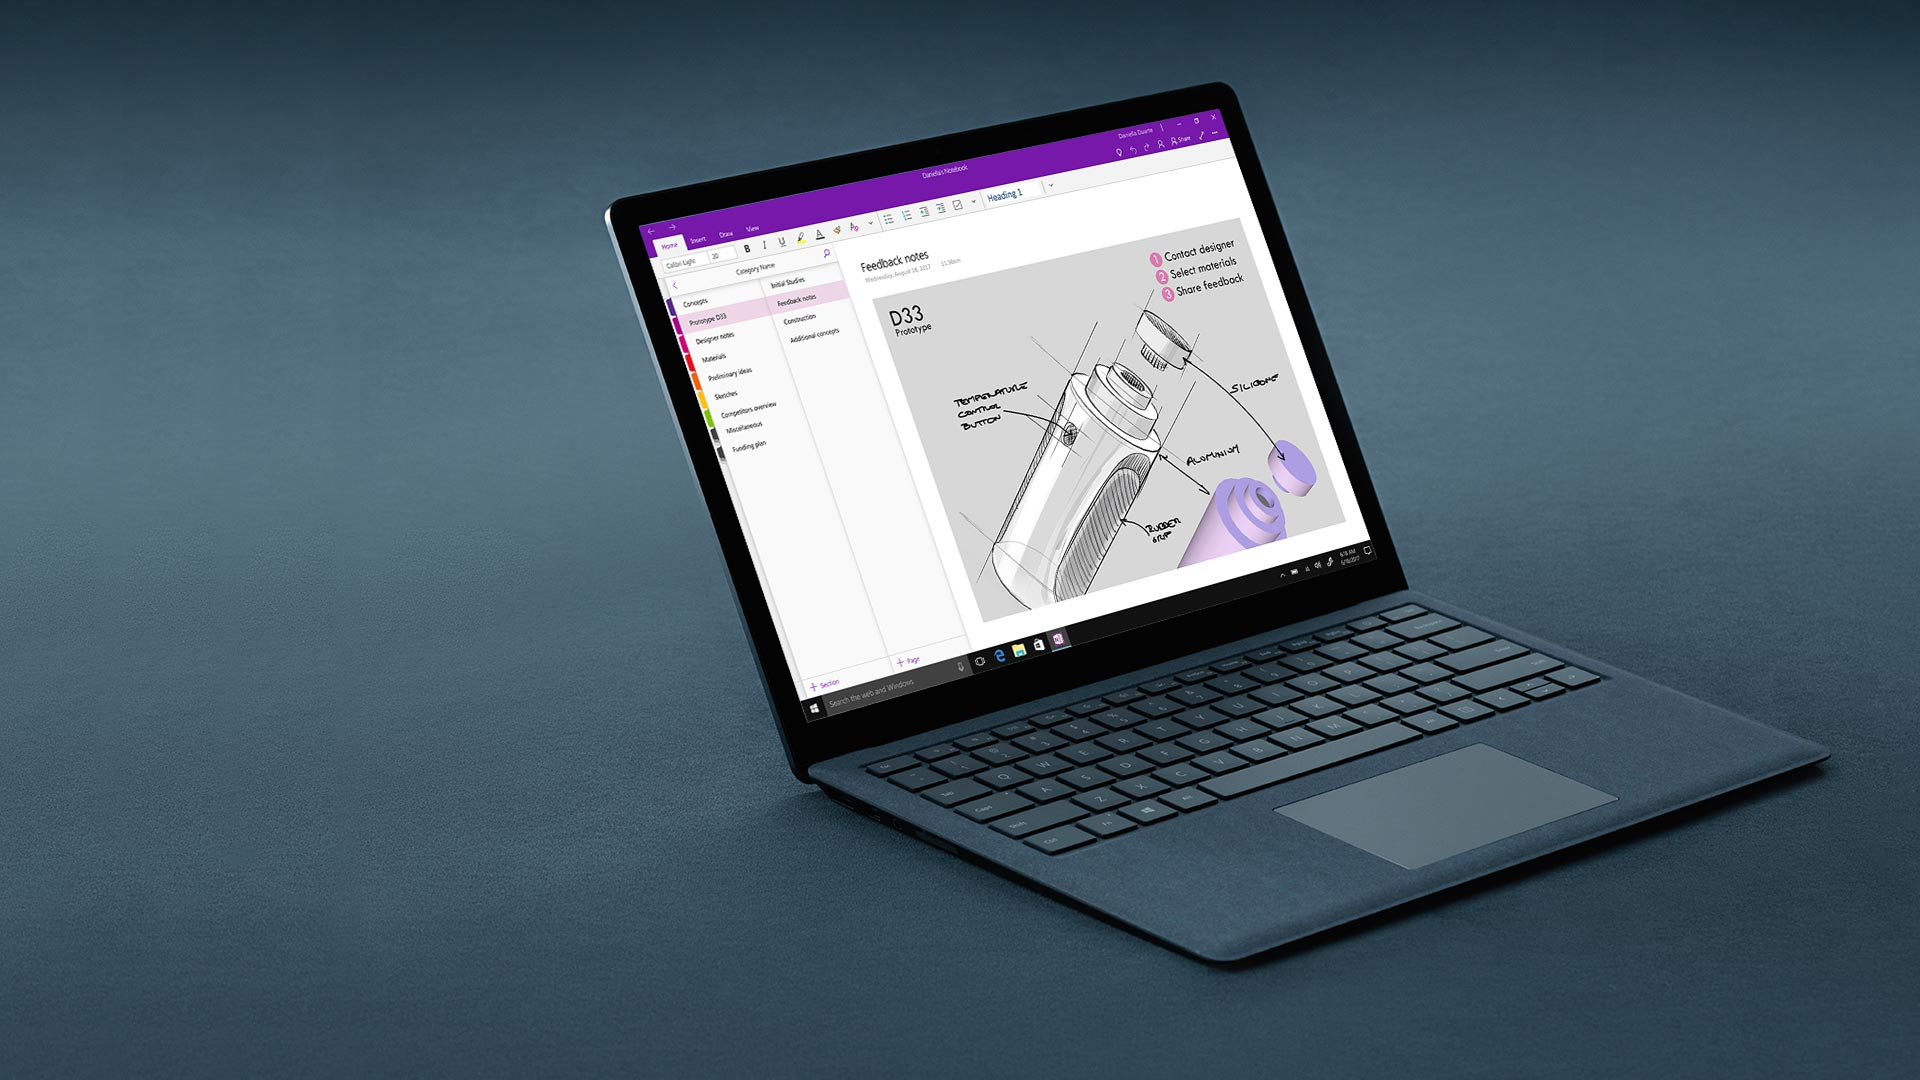 Surface Laptop in Kobalt Blau mit One Note-Bildschirm.